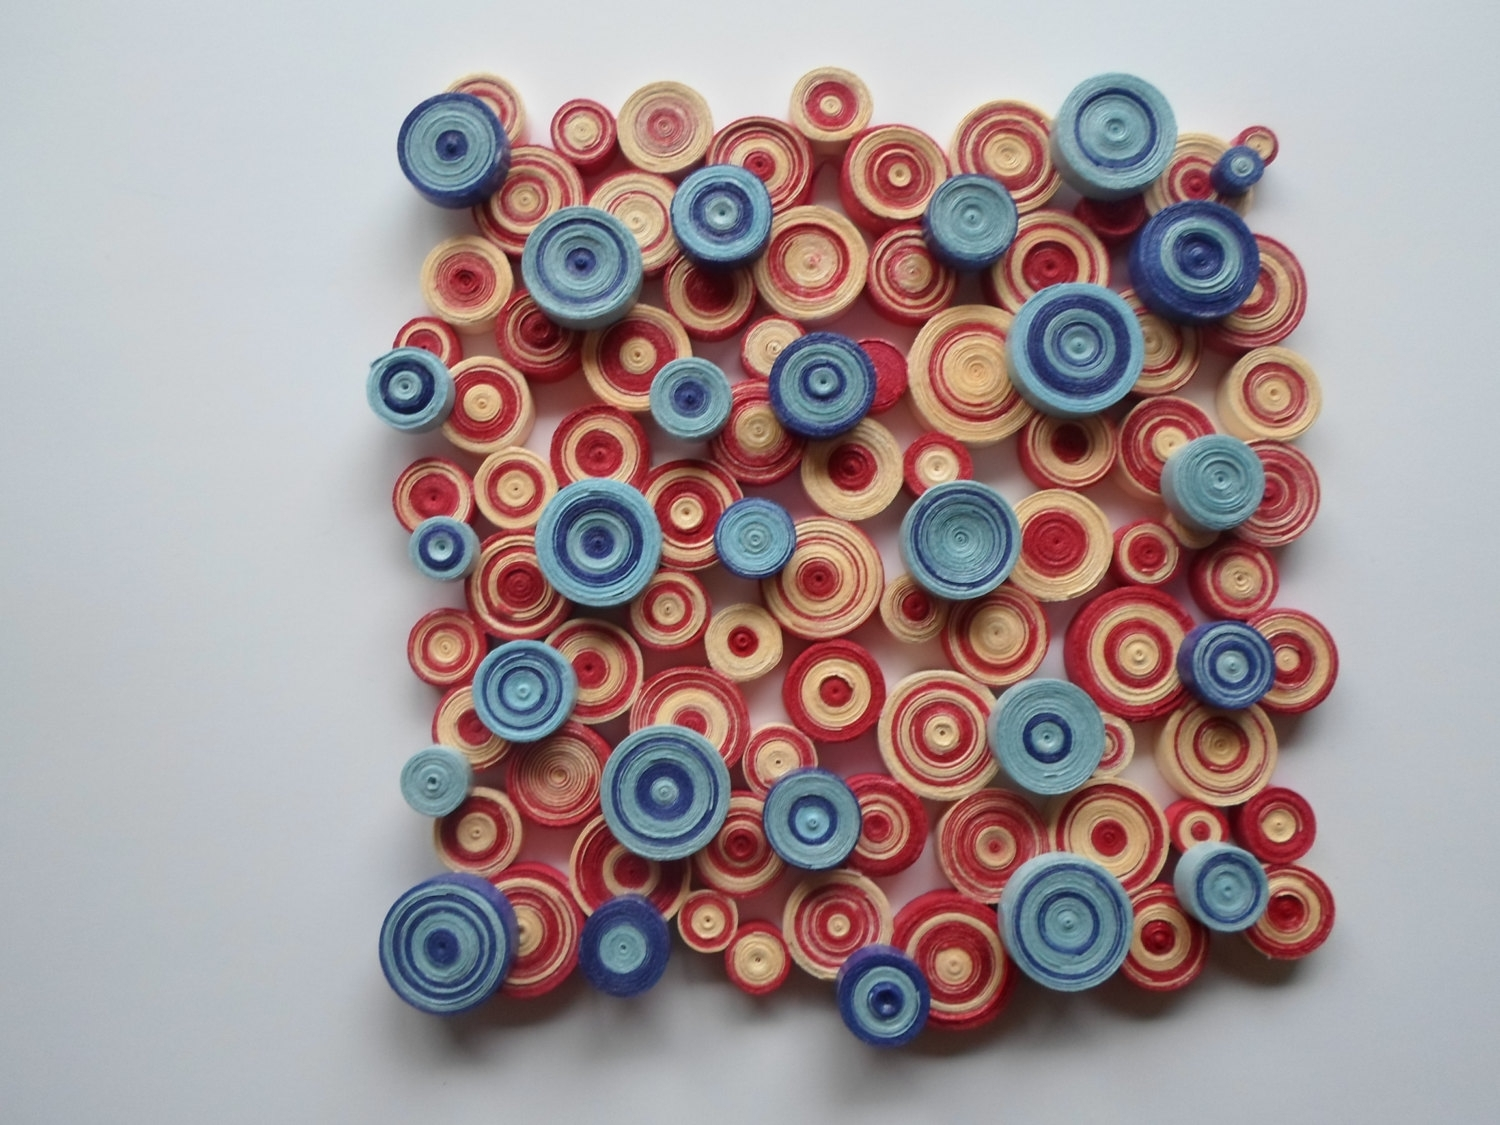 Modern Wall Decor Blue Red Wall Decoration Abstract Circles Wall Inside Most Current Abstract Circles Wall Art (Gallery 15 of 20)